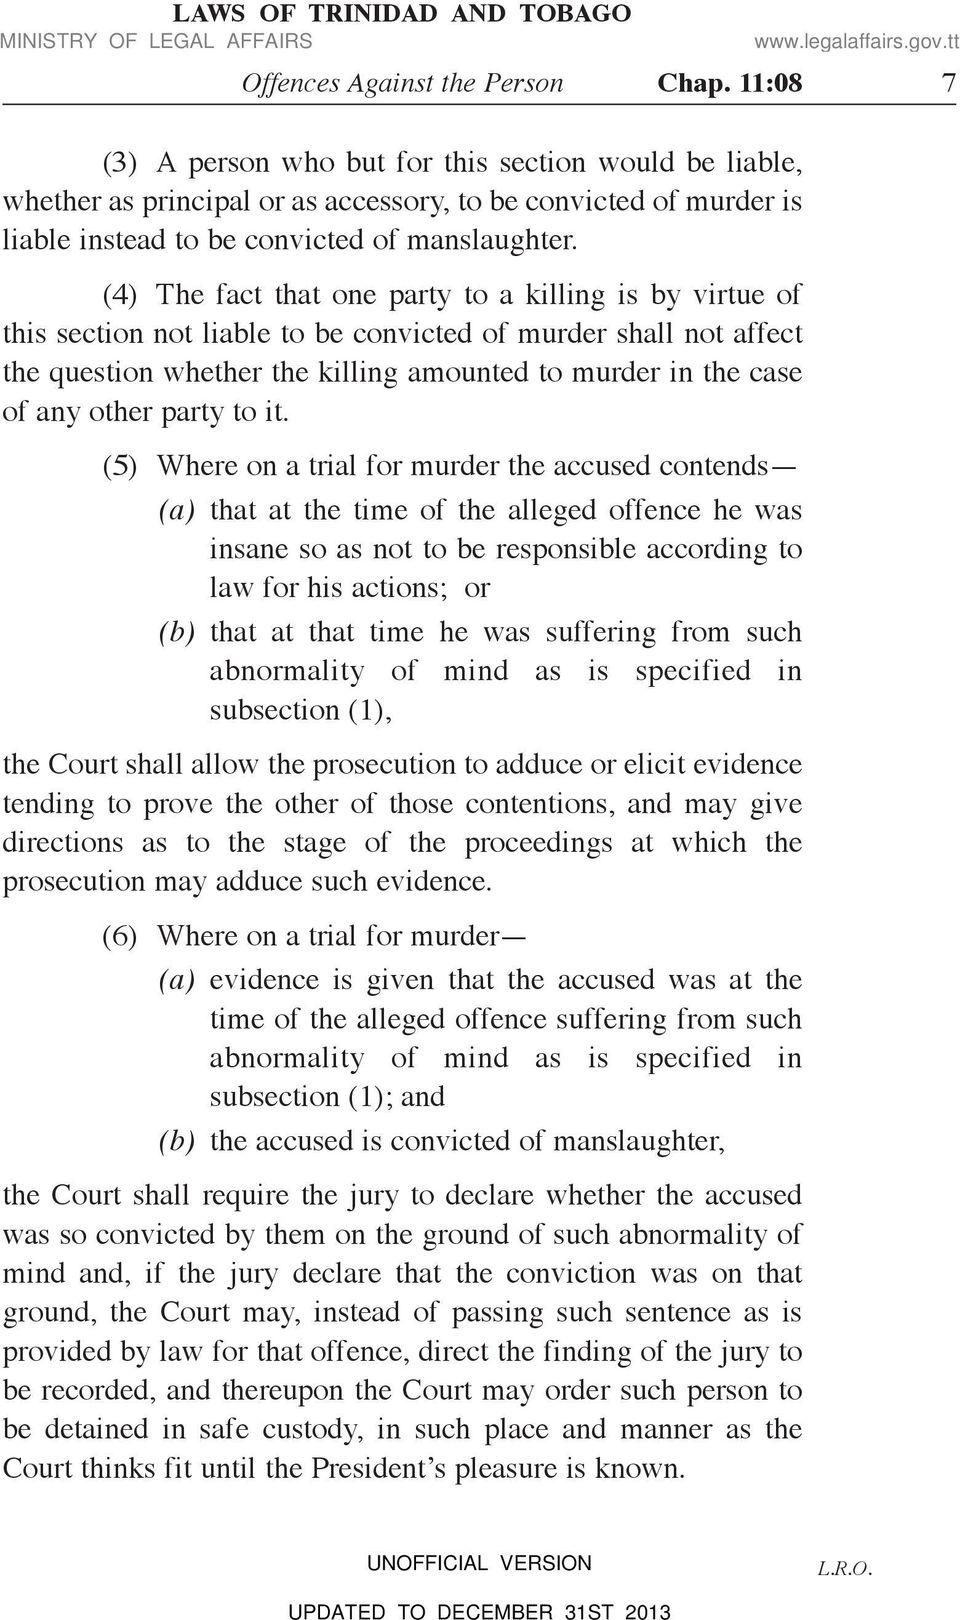 (4) The fact that one party to a killing is by virtue of this section not liable to be convicted of murder shall not affect the question whether the killing amounted to murder in the case of any